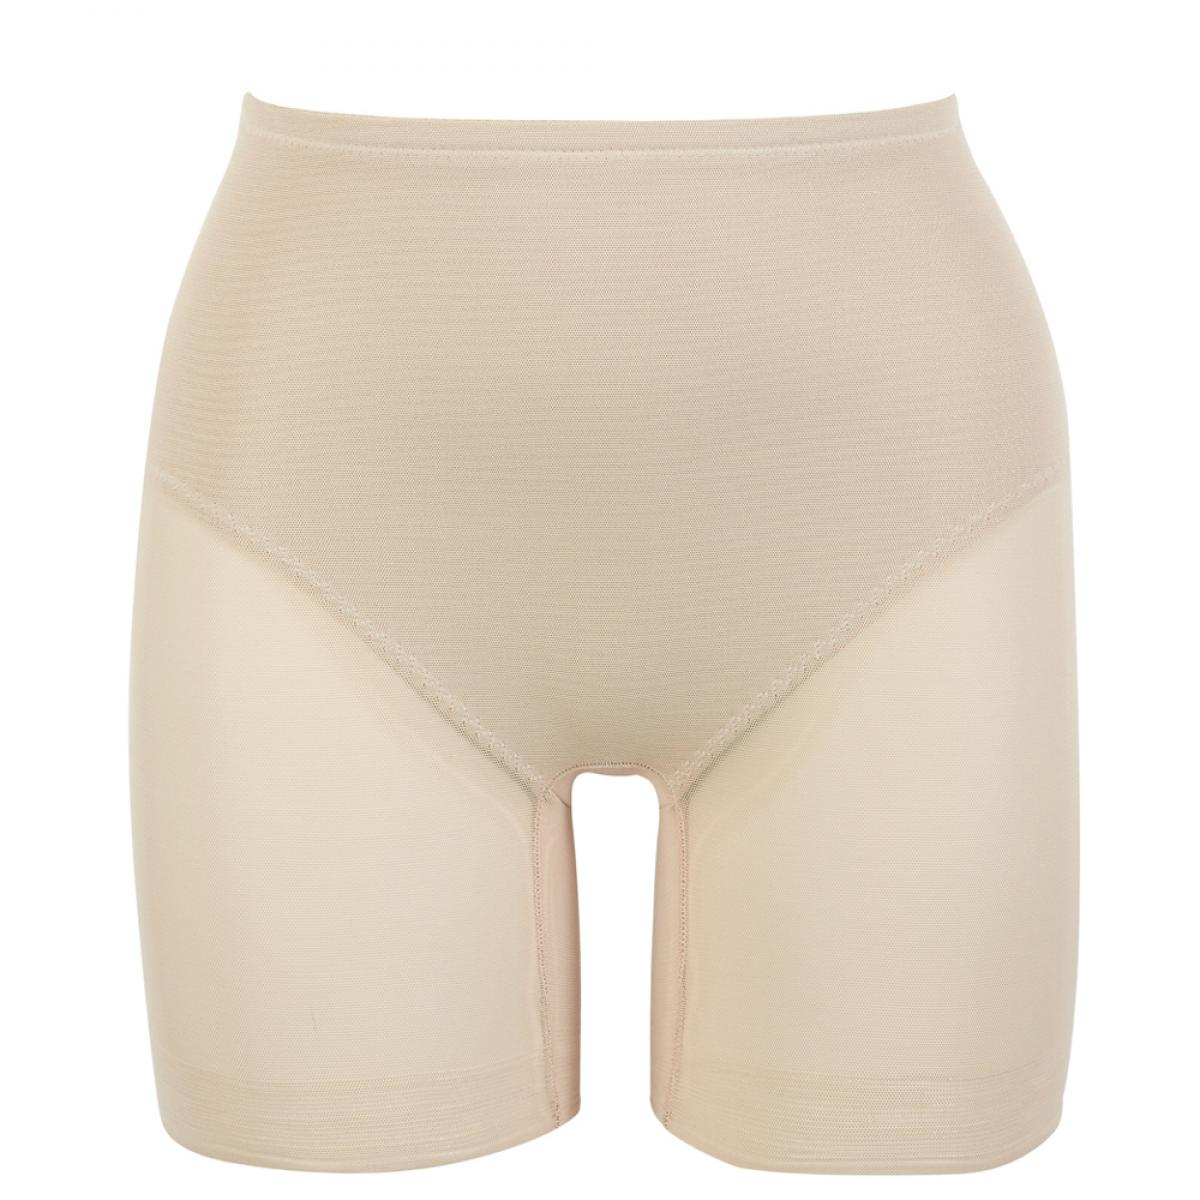 Panty taille haute Miraclesuit SEXY SHEER SHAPING nude